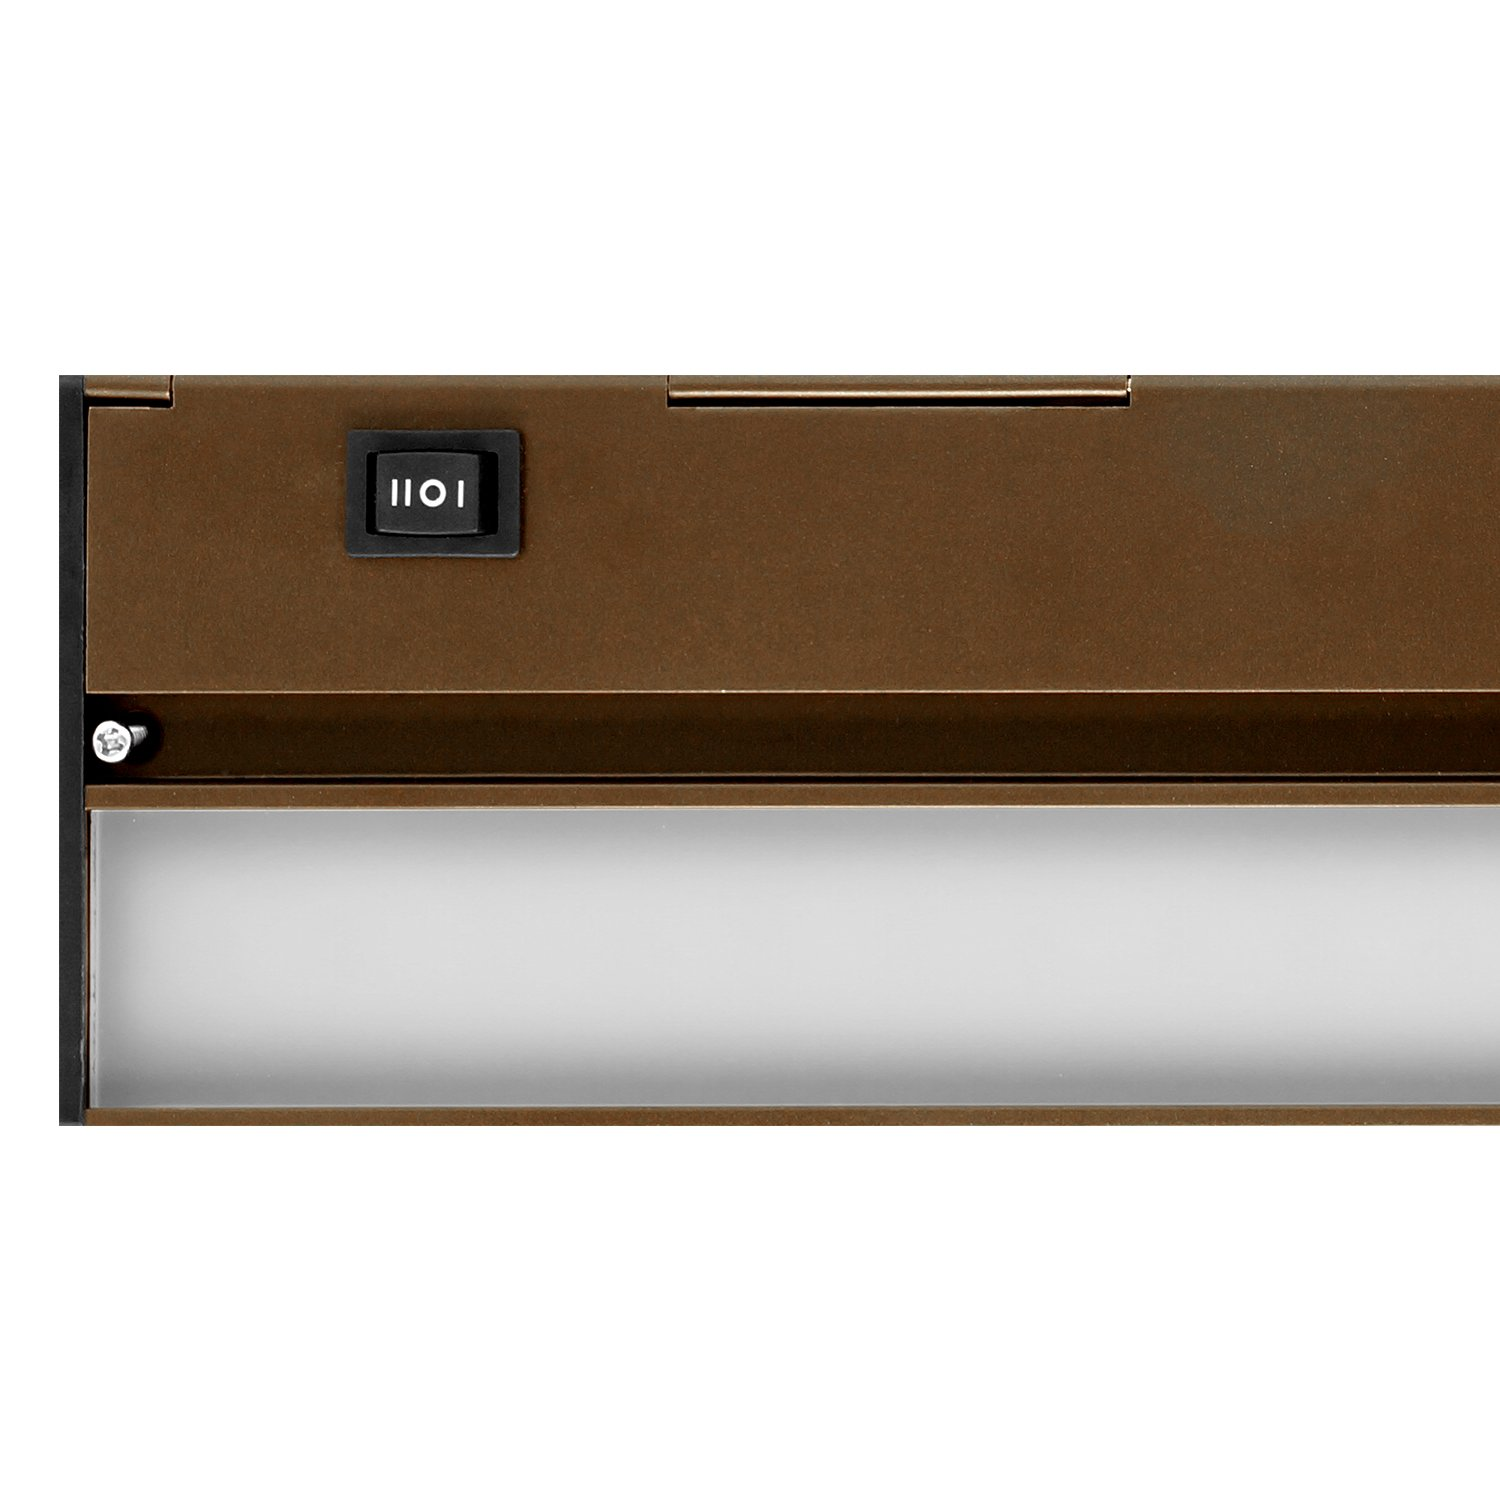 NICOR Lighting Slim 40-Inch Dimmable LED Under-Cabinet Lighting Fixture, Oil Rubbed Bronze (NUC-3-40-OB) by NICOR Lighting